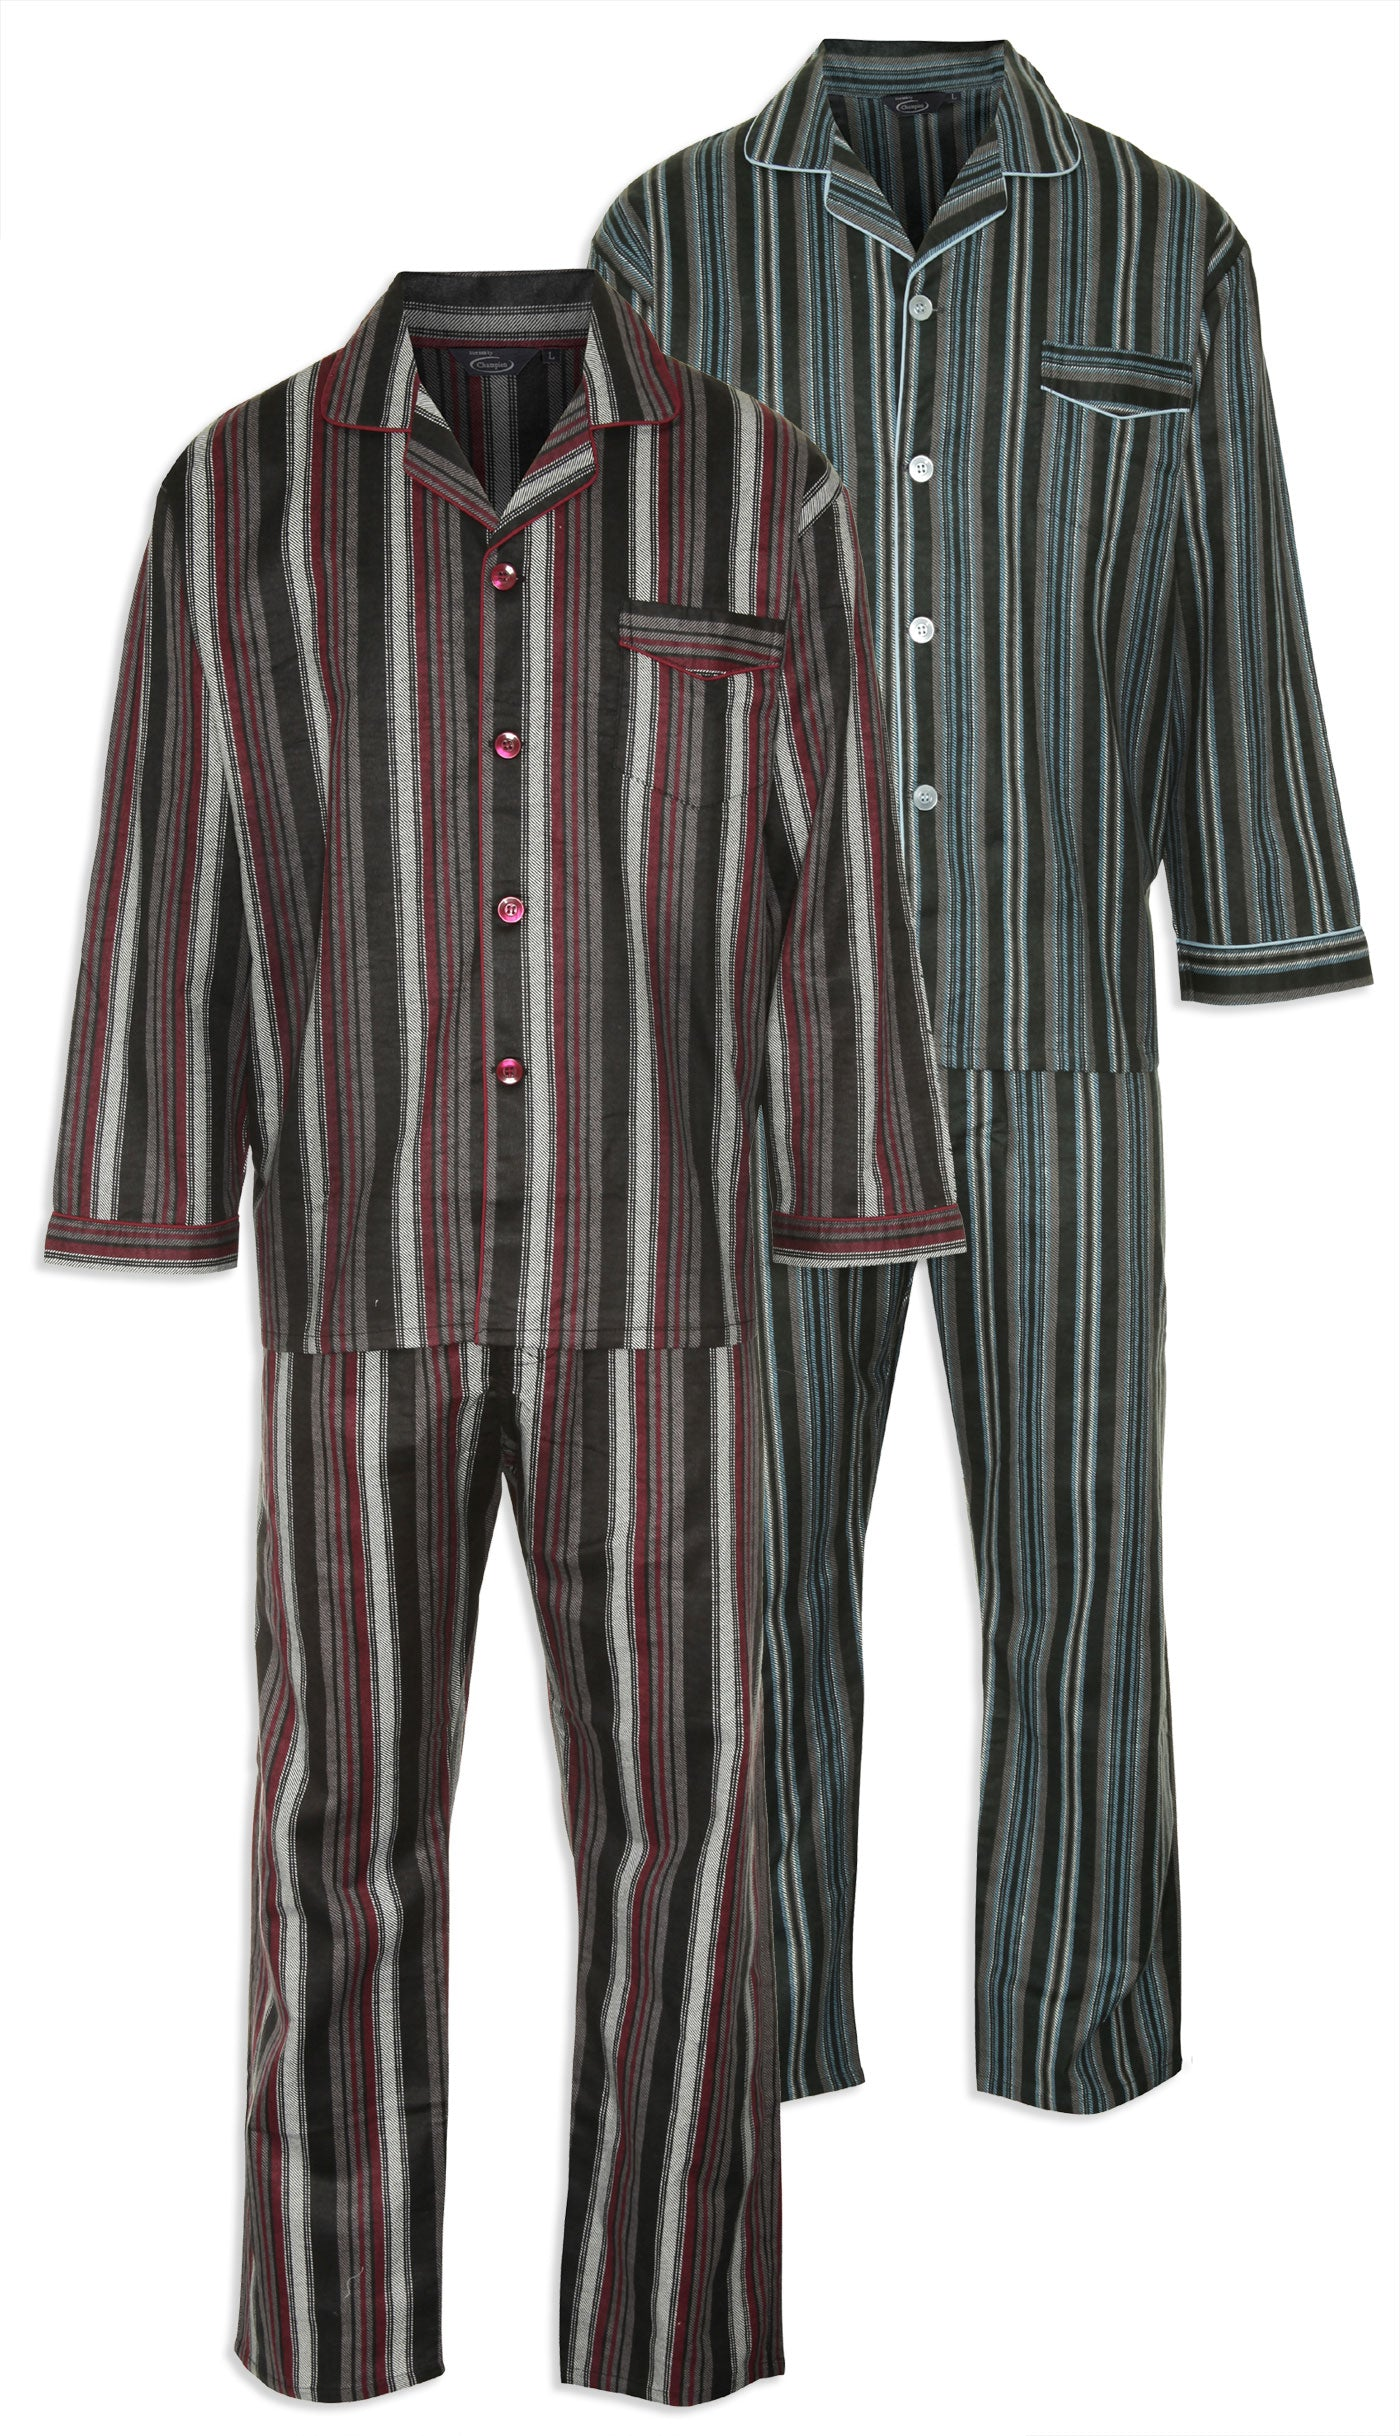 Champion Kingston Striped Pyjamas 100% Cotton pair of in blue and burgundy